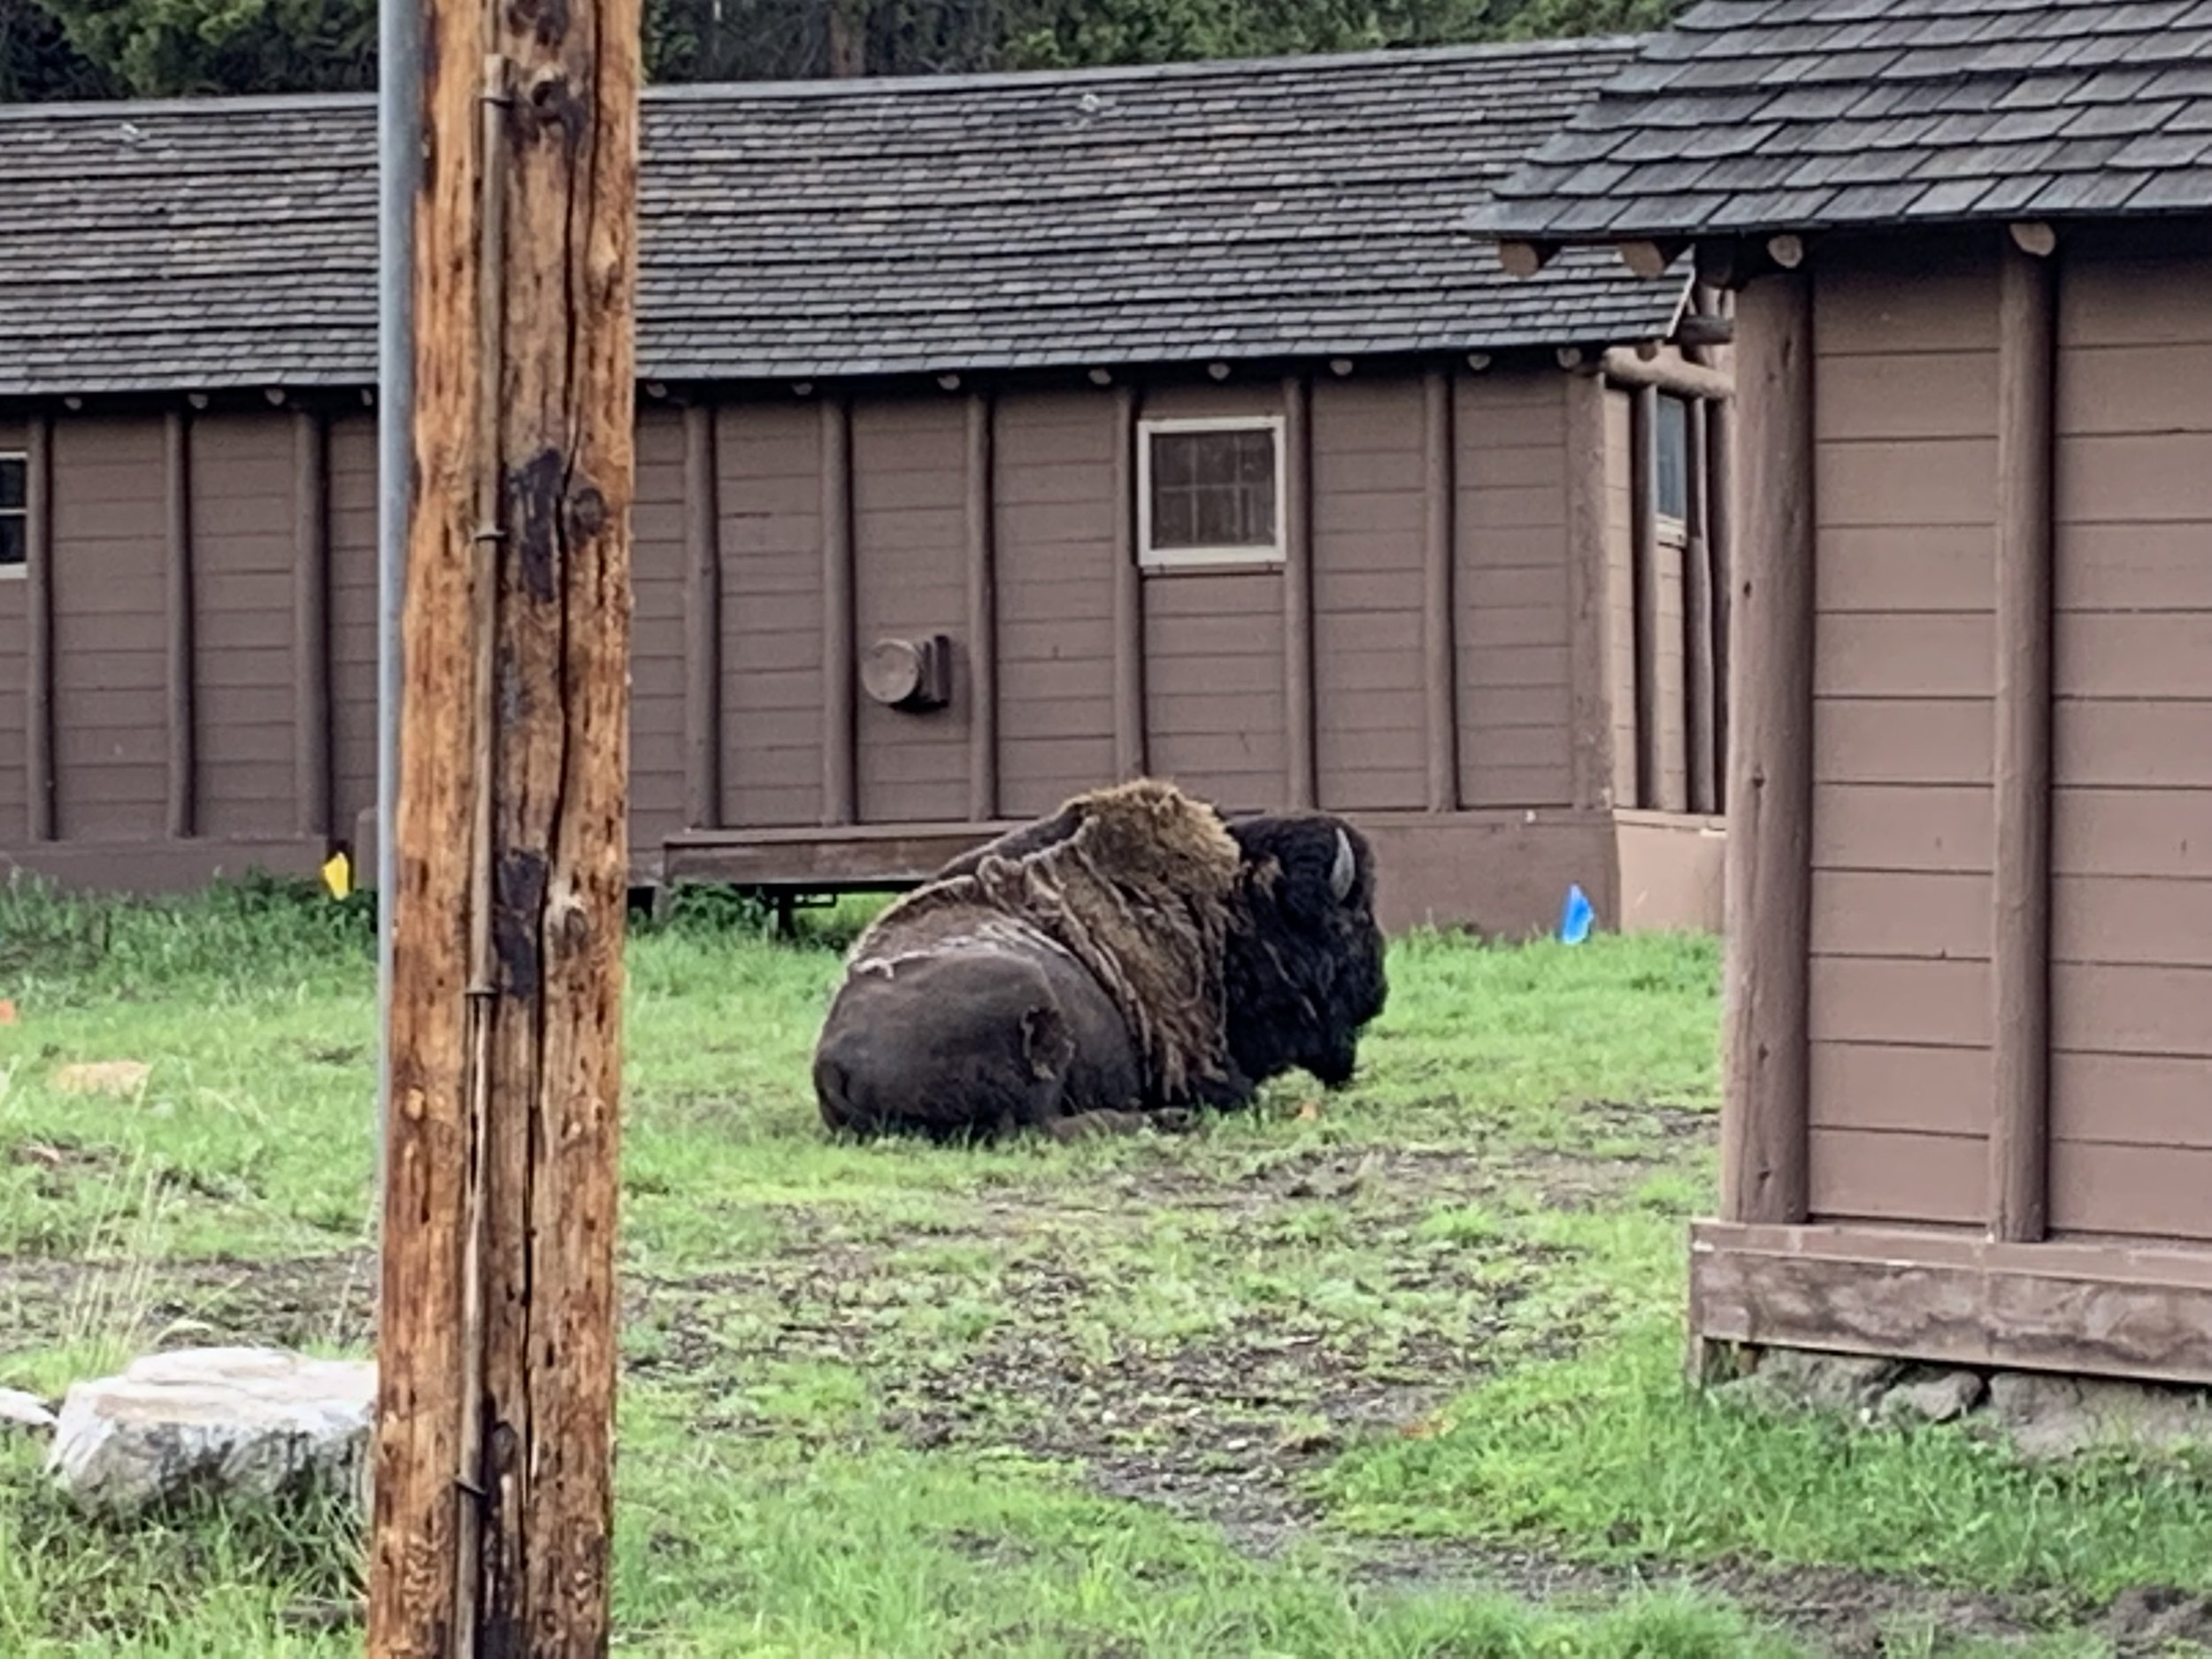 The bison outside my cabin in Yellowstone was the size of a VW bug!